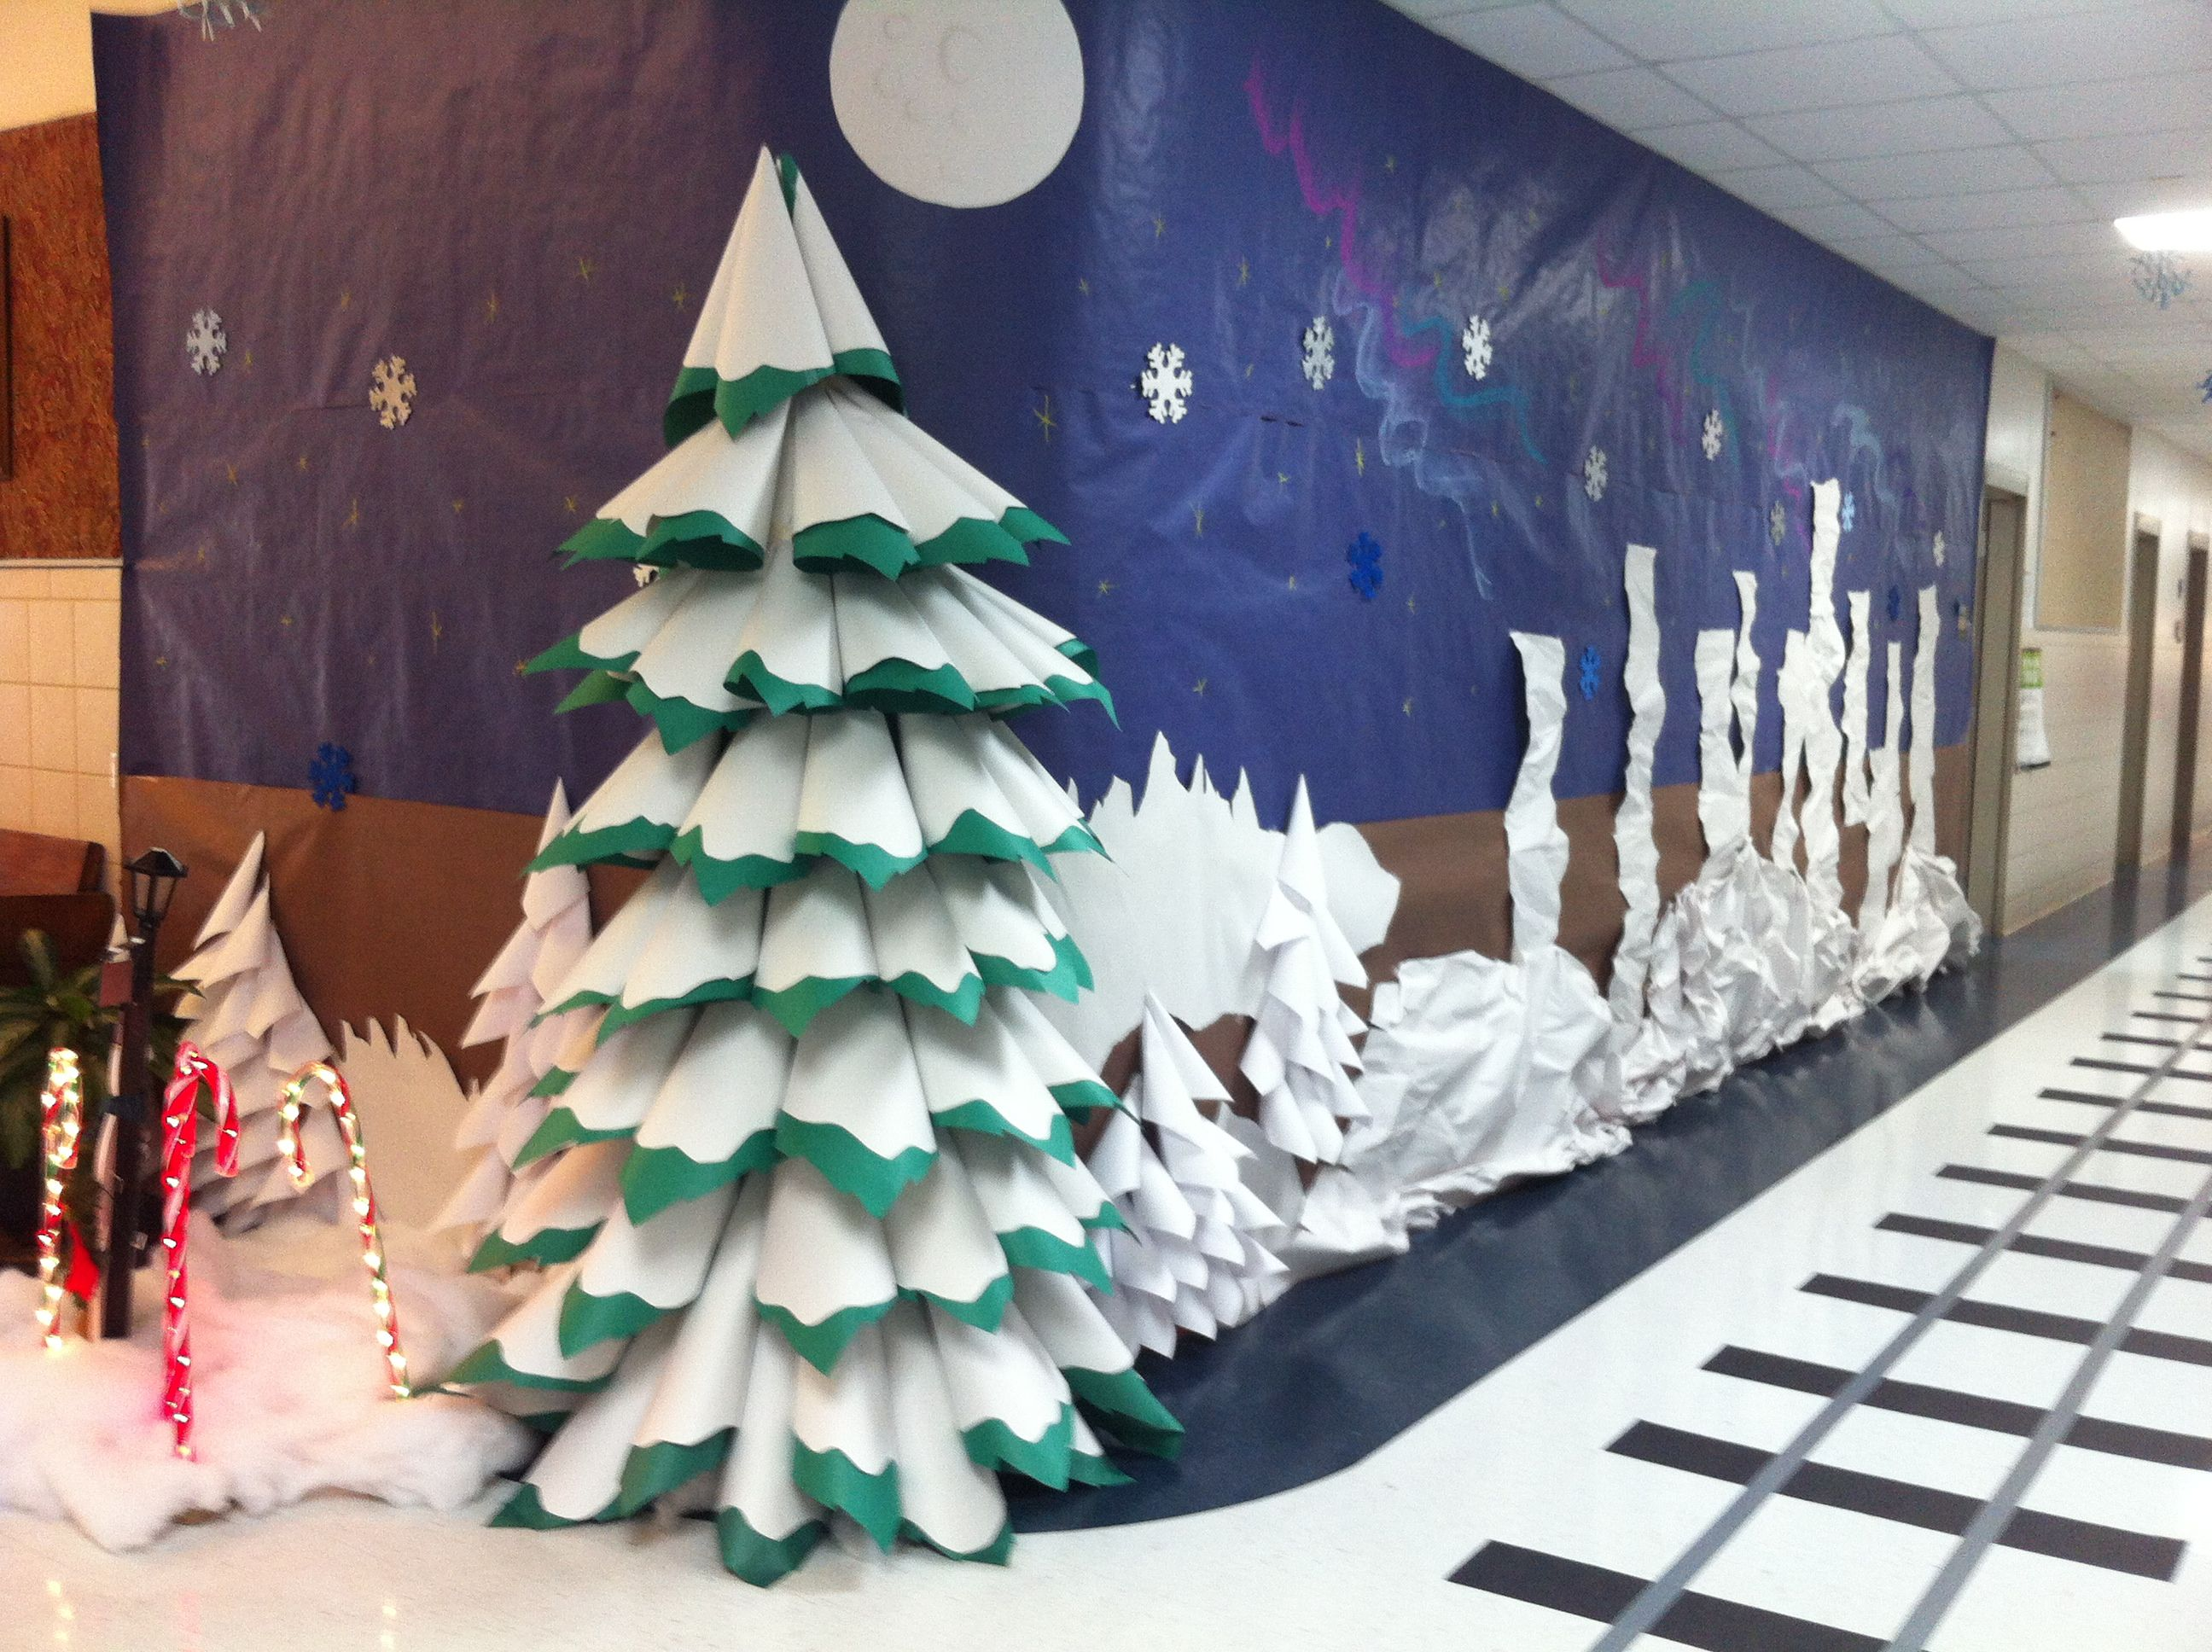 Making christmas decorations in school - Paper 3d Christmas Tree Polar Express Hallway Decorations